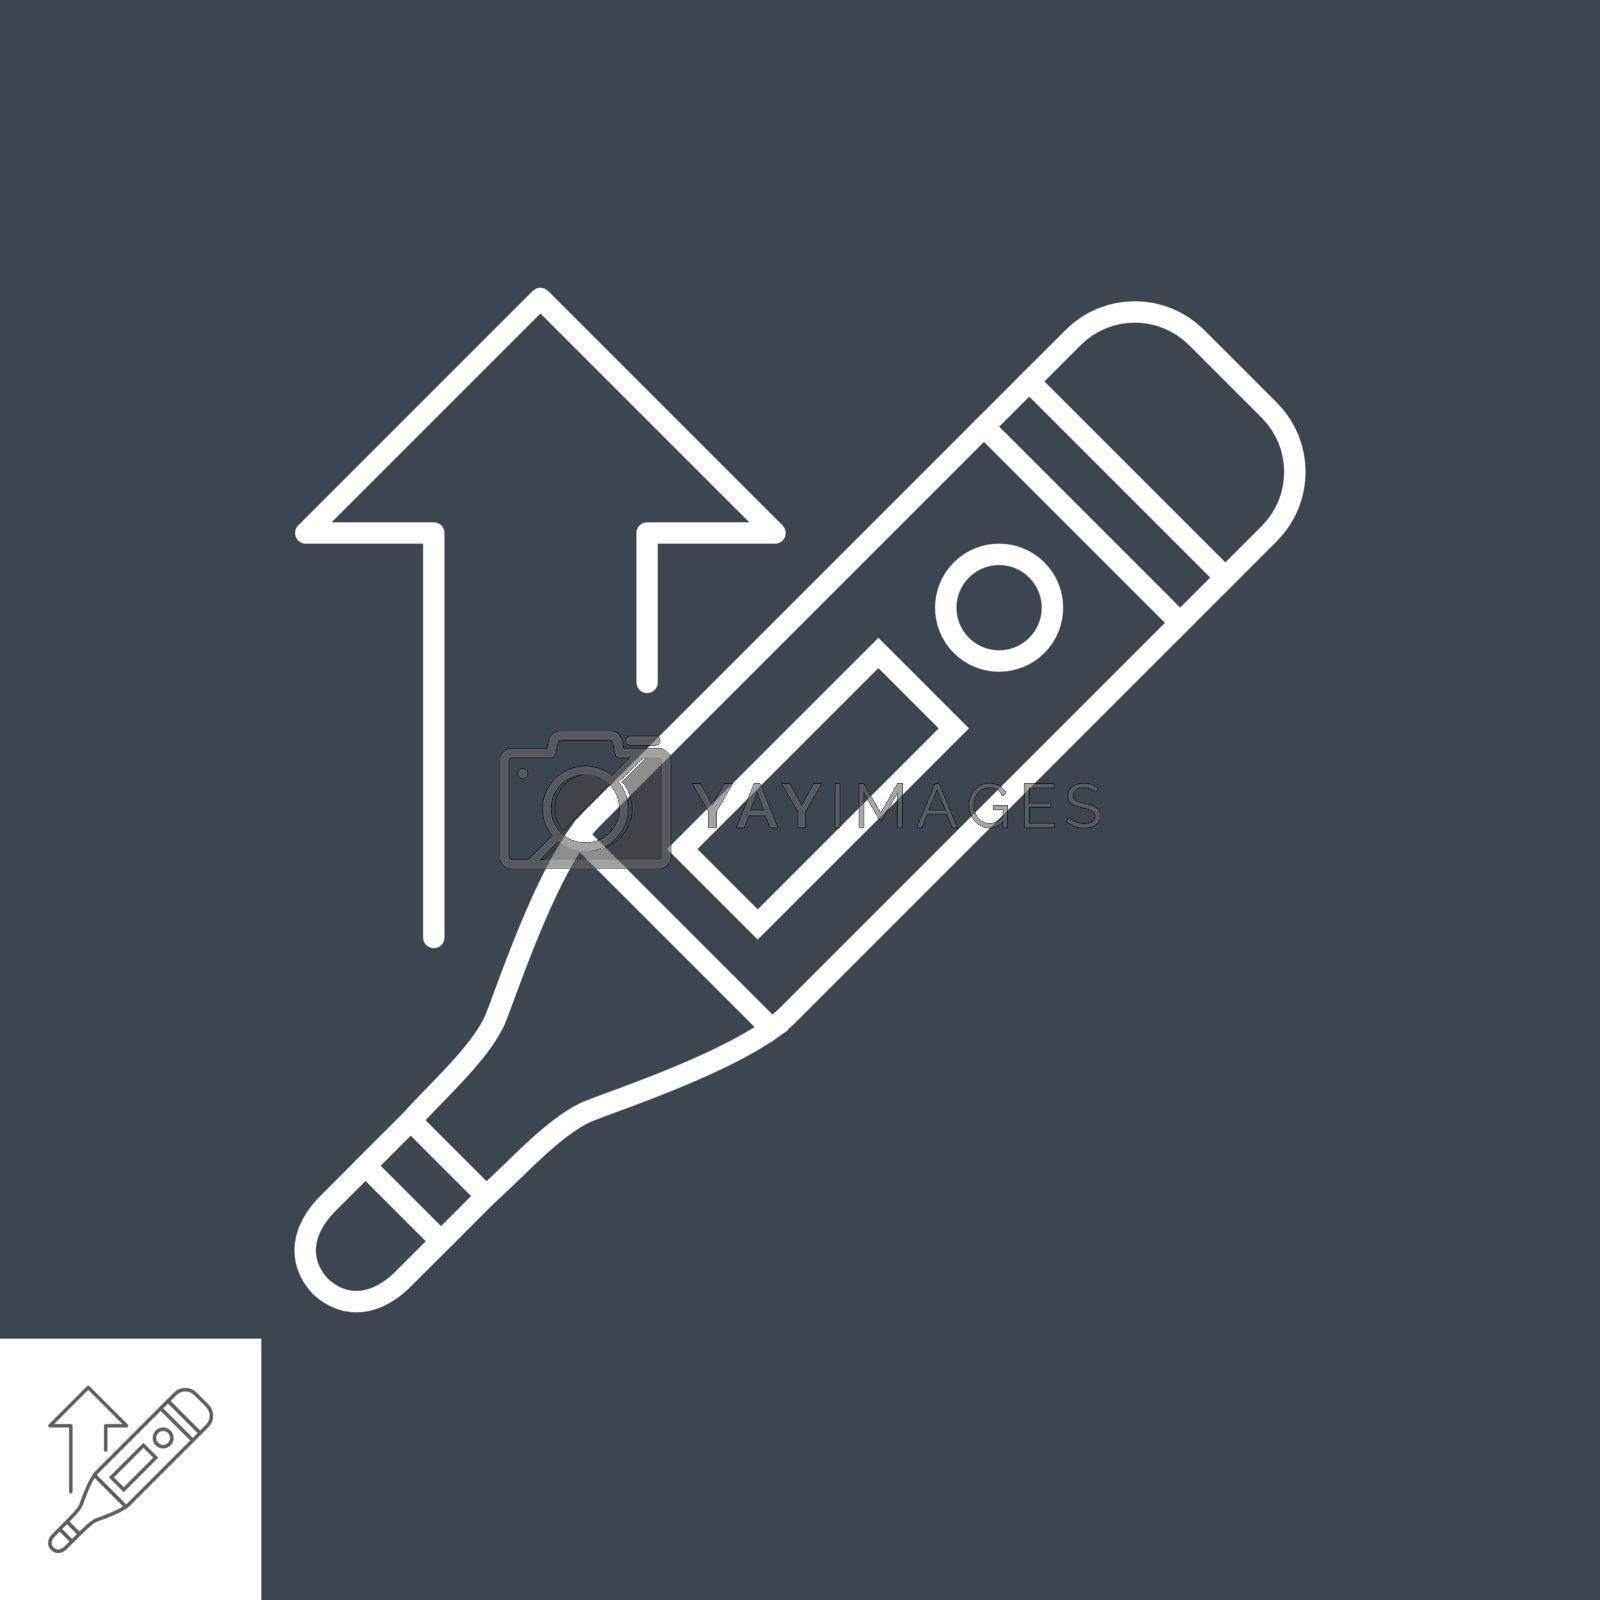 Thermometer with a high temperature related vector thin line icon. Isolated on black background. Editable stroke. Vector illustration.